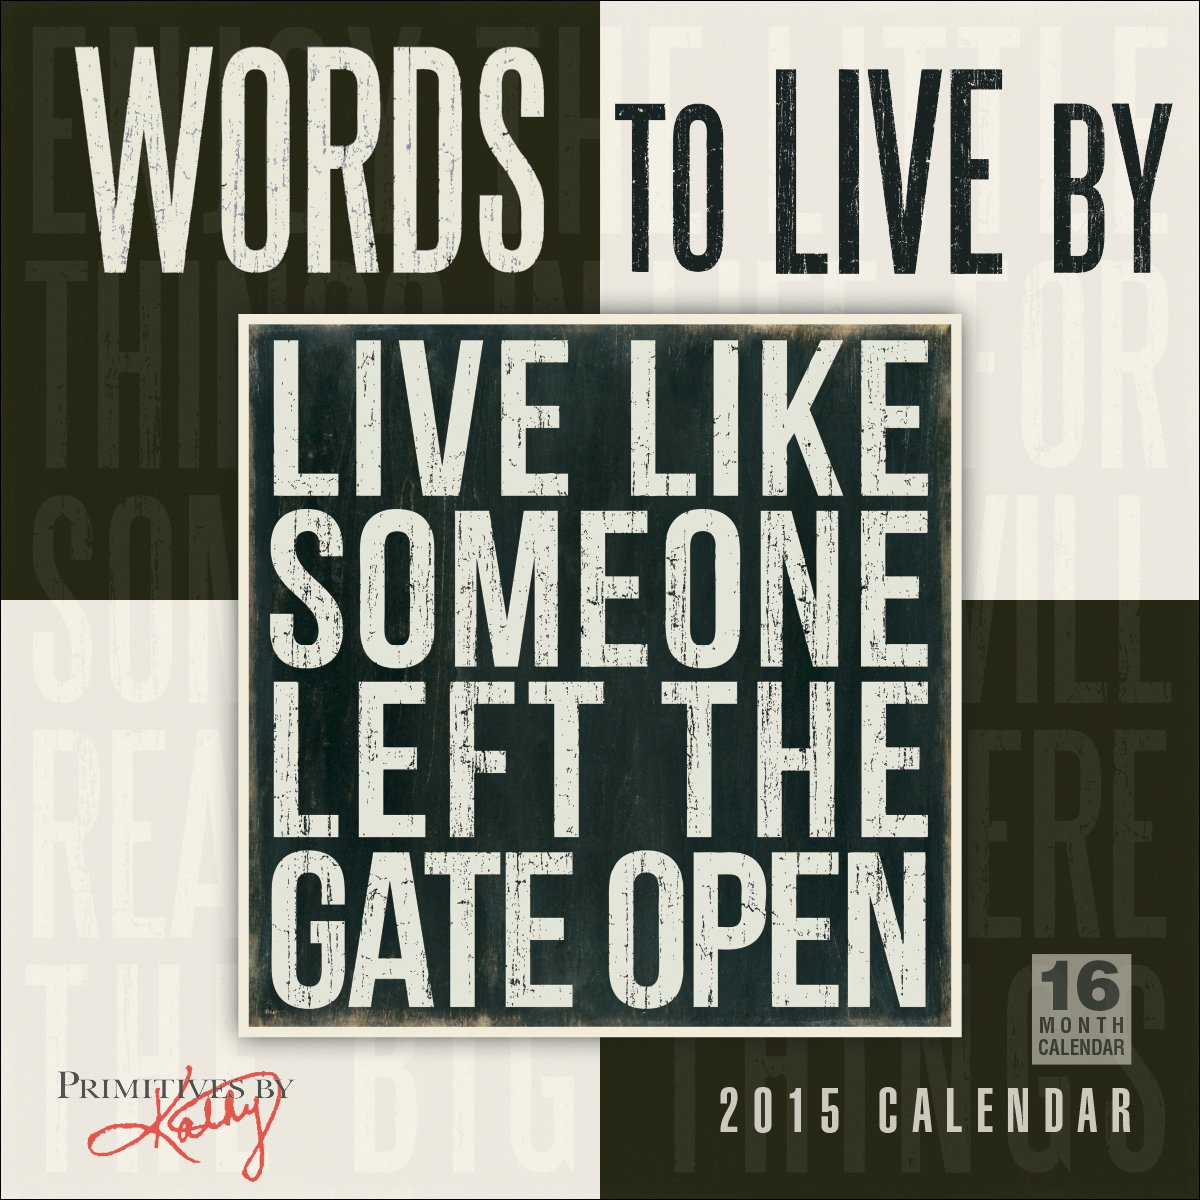 Words to Live by 2015 Wall Calendar